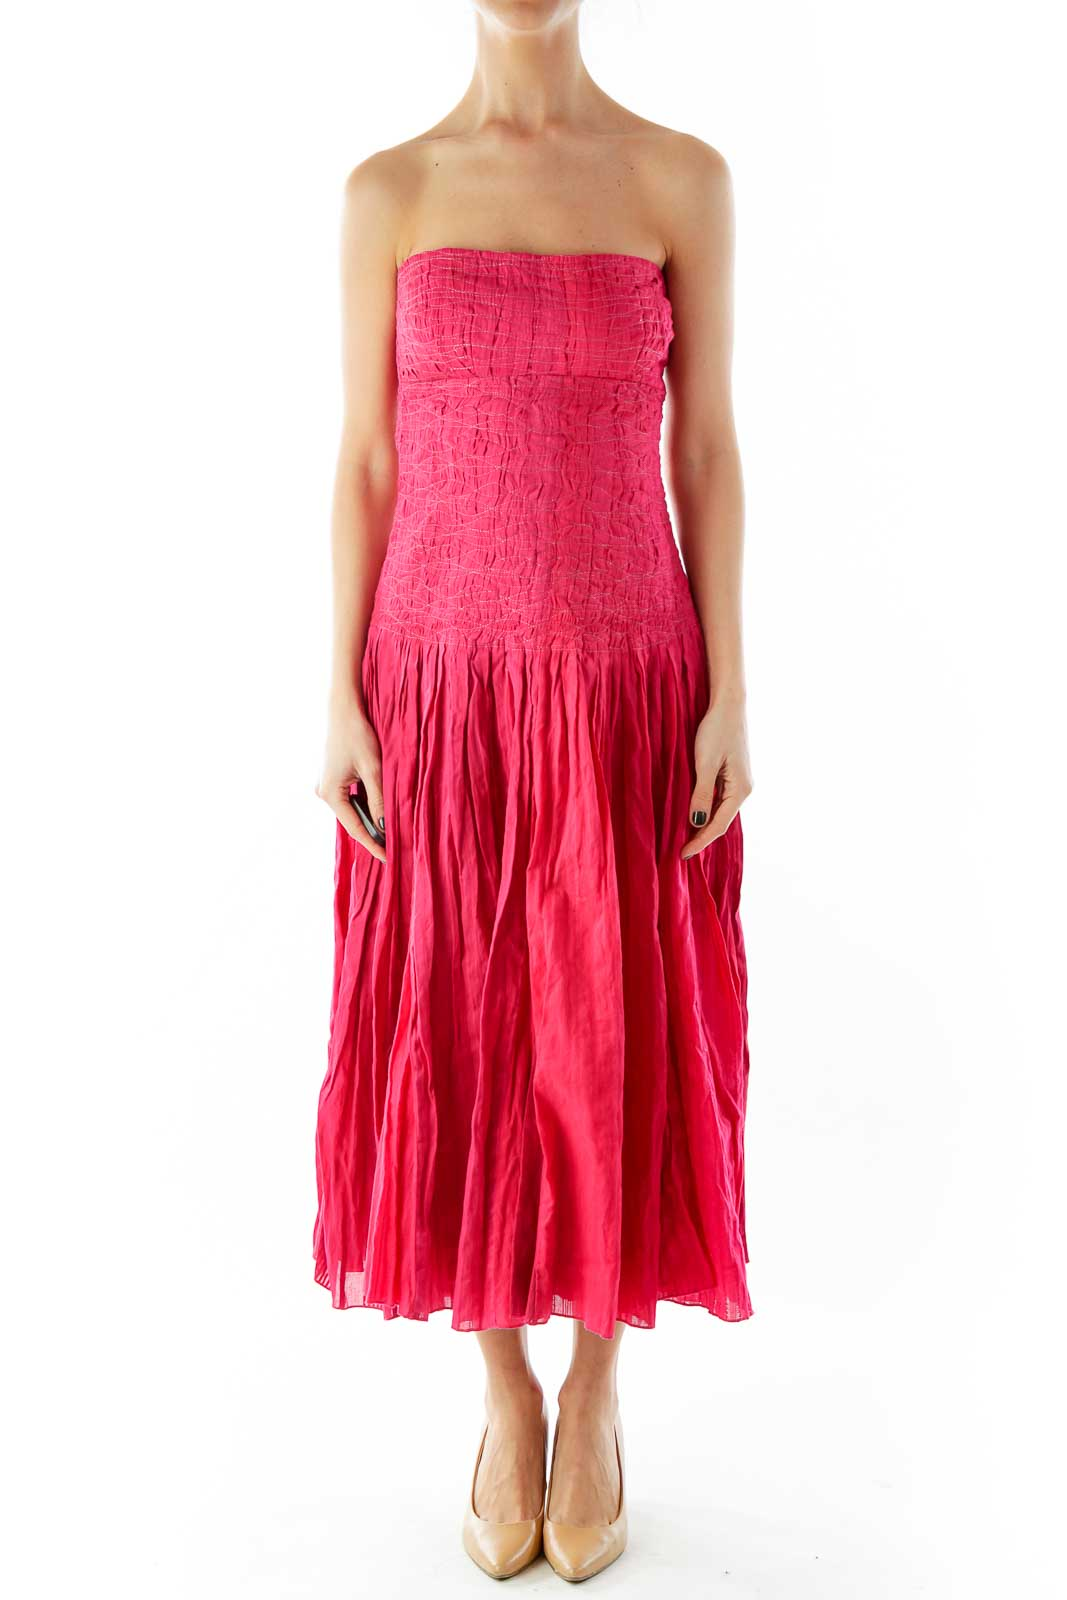 Red Strapless Textured Cocktail Dress Front